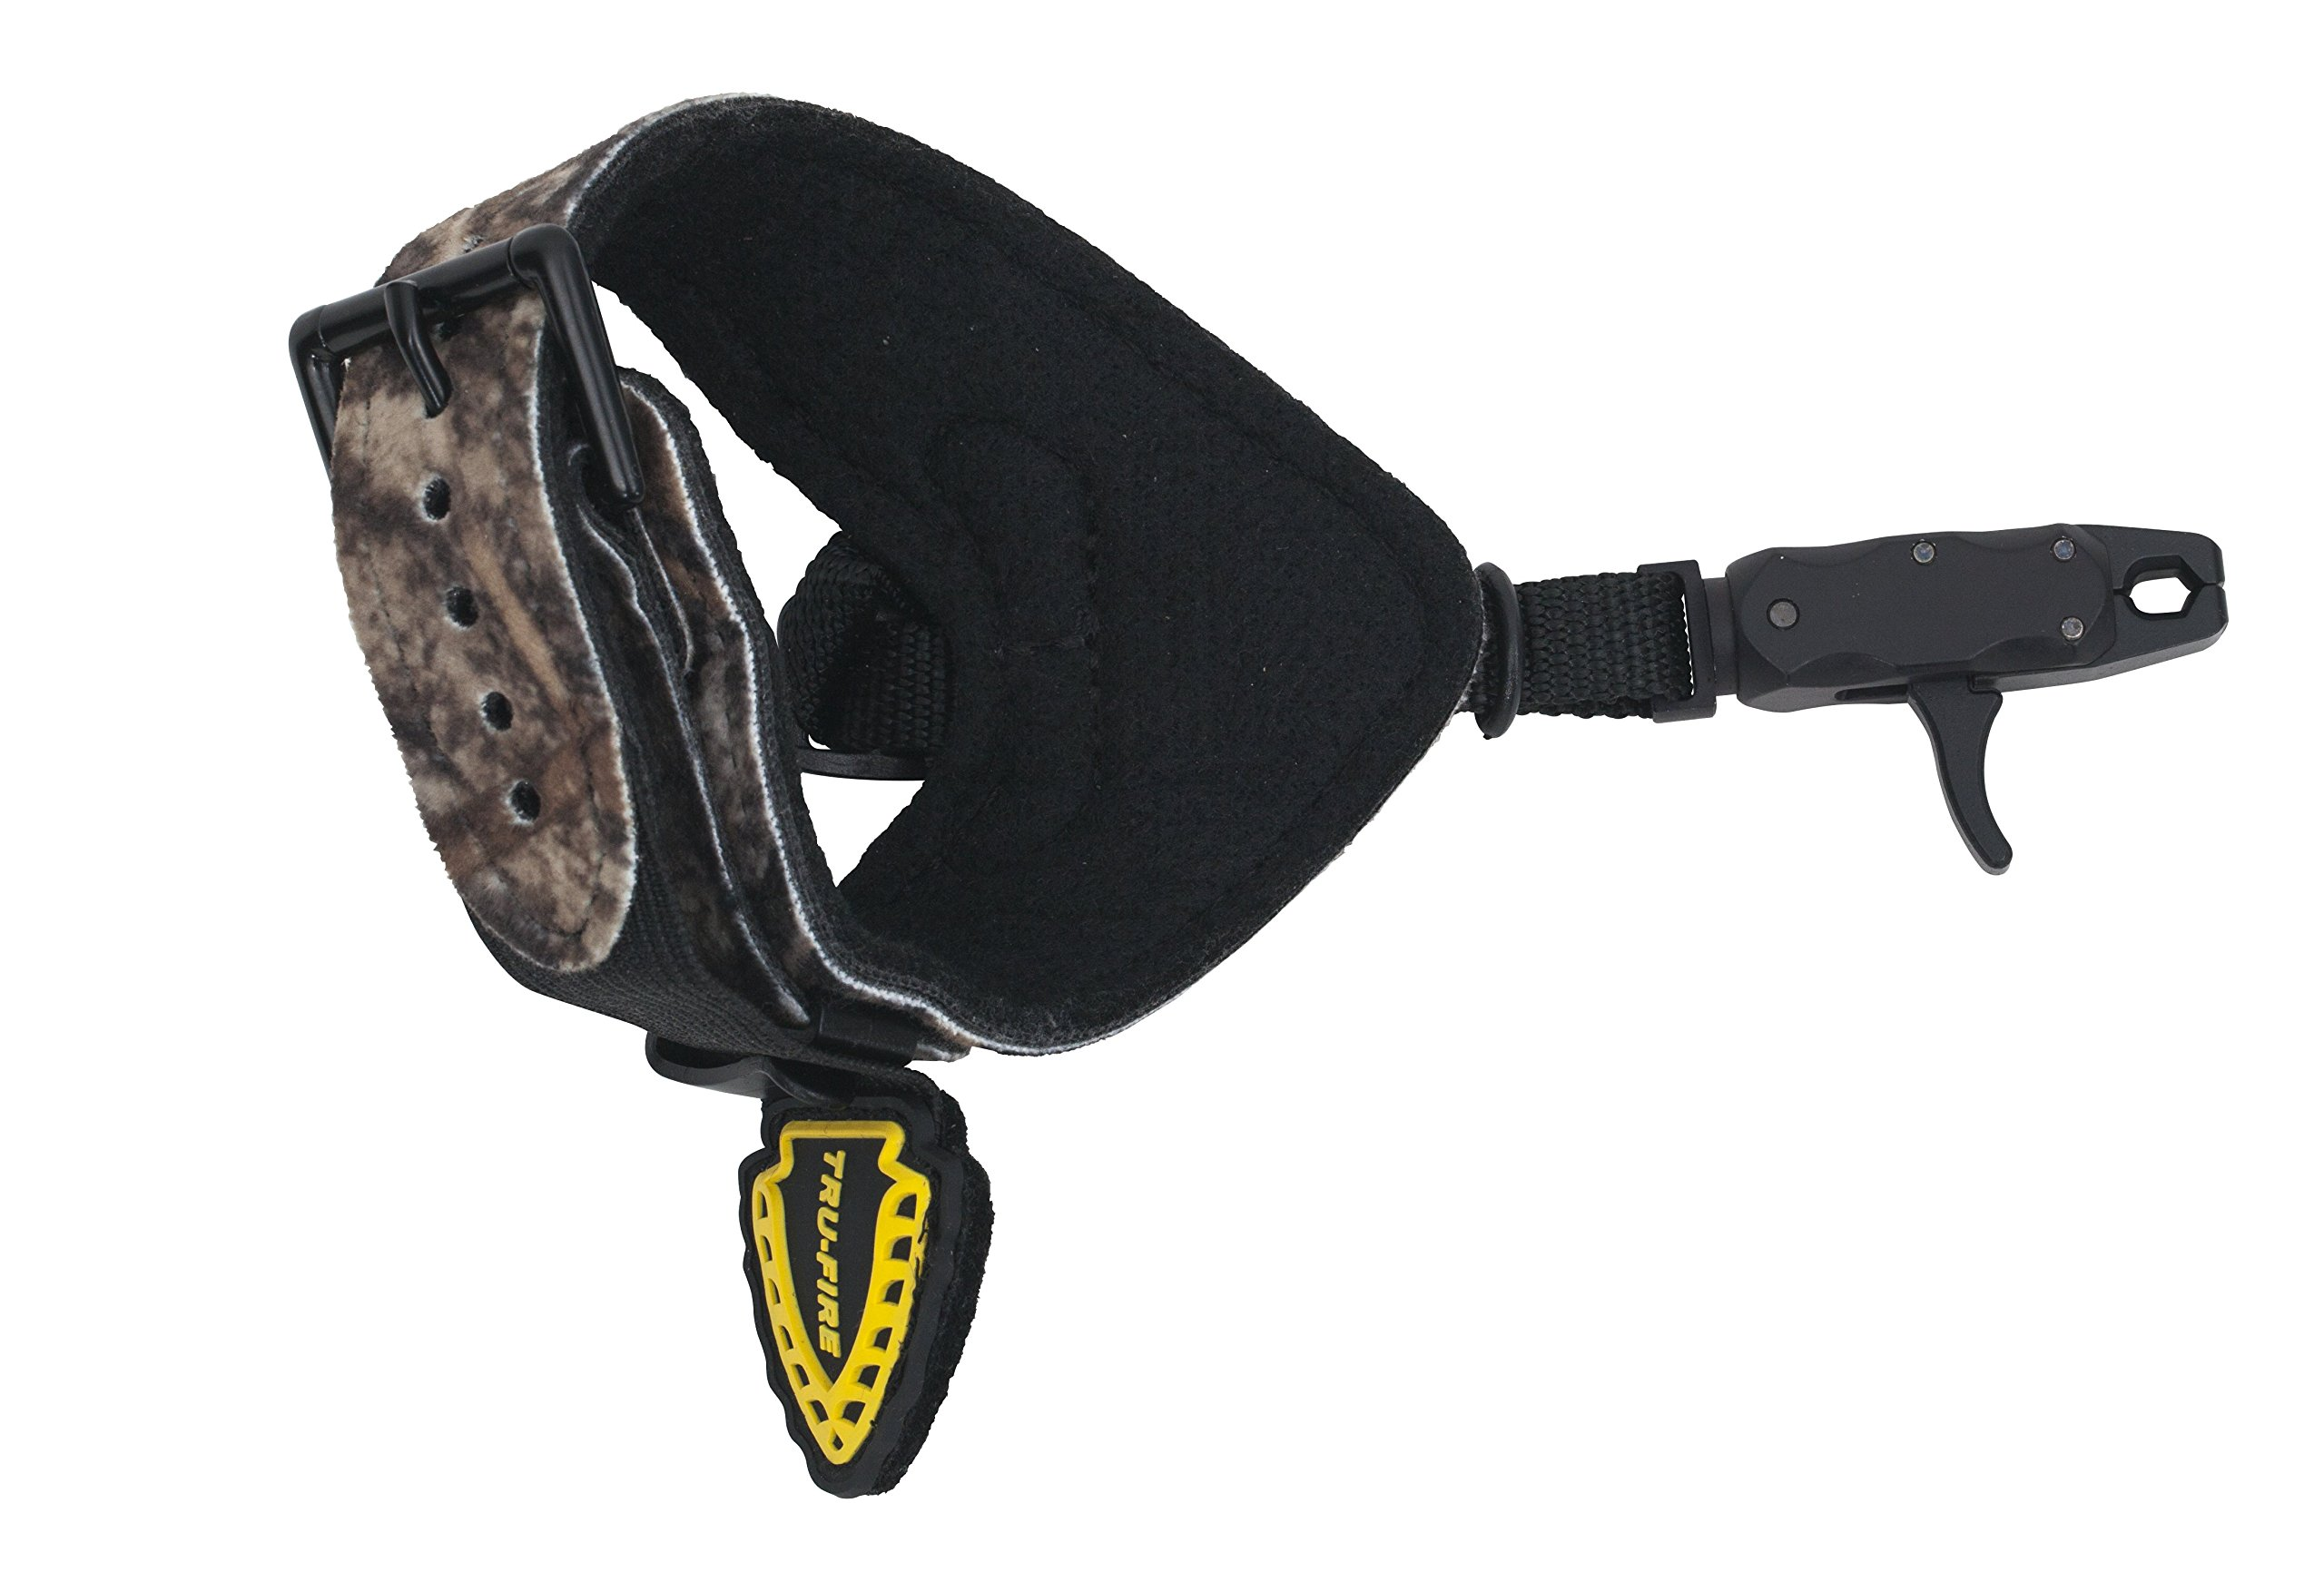 TruFire Hurricane Extreme Buckle Web Camo Archery Compound Bow Release - Fits Small, Junior, Youth